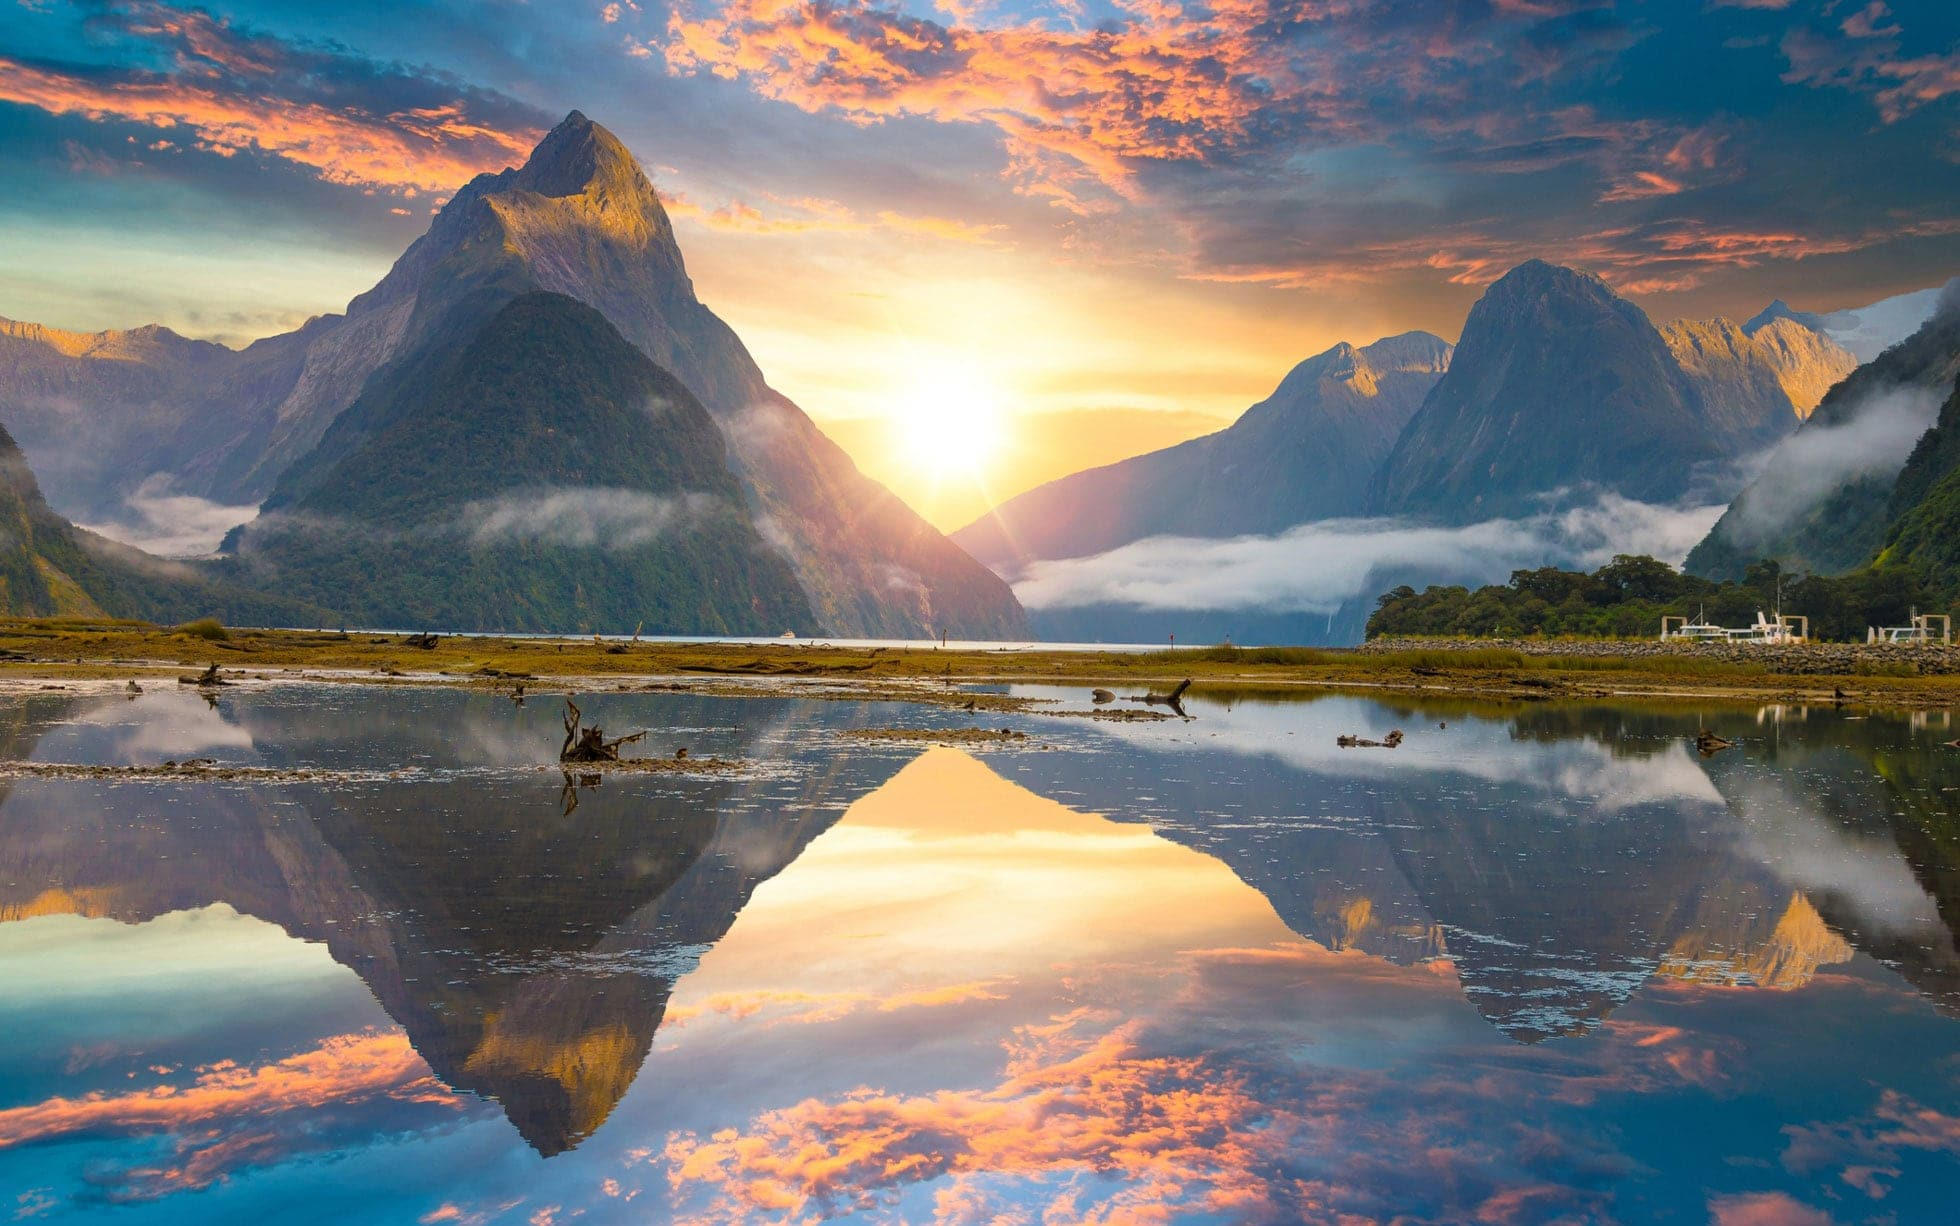 Milford-Sound-GettyImages-875331434